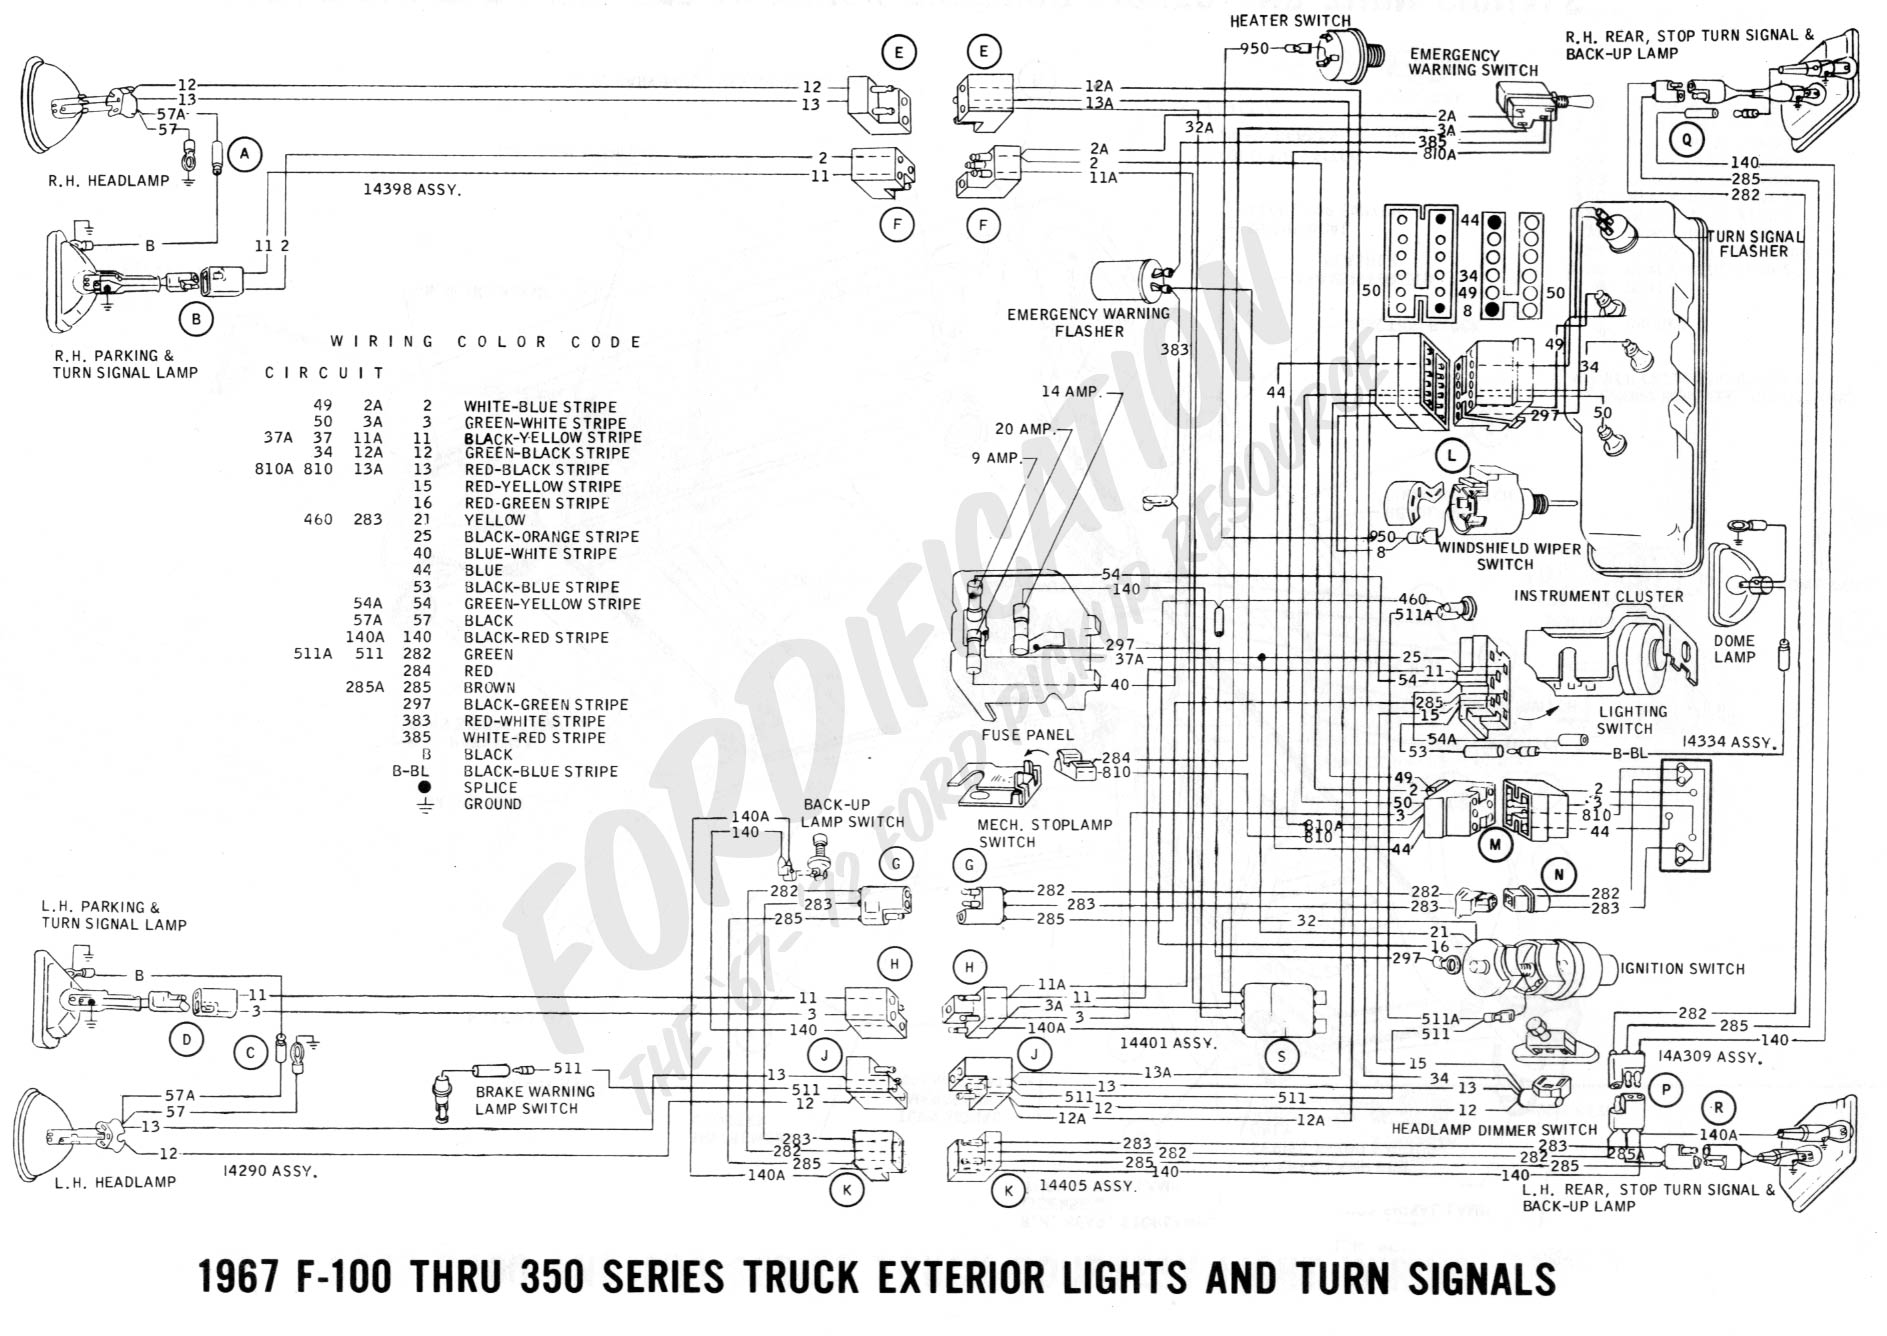 2001 ford f250 fuse panel diagram 2001 image 2001 ford f250 4x4 wiring diagram 2001 discover your wiring on 2001 ford f250 fuse panel